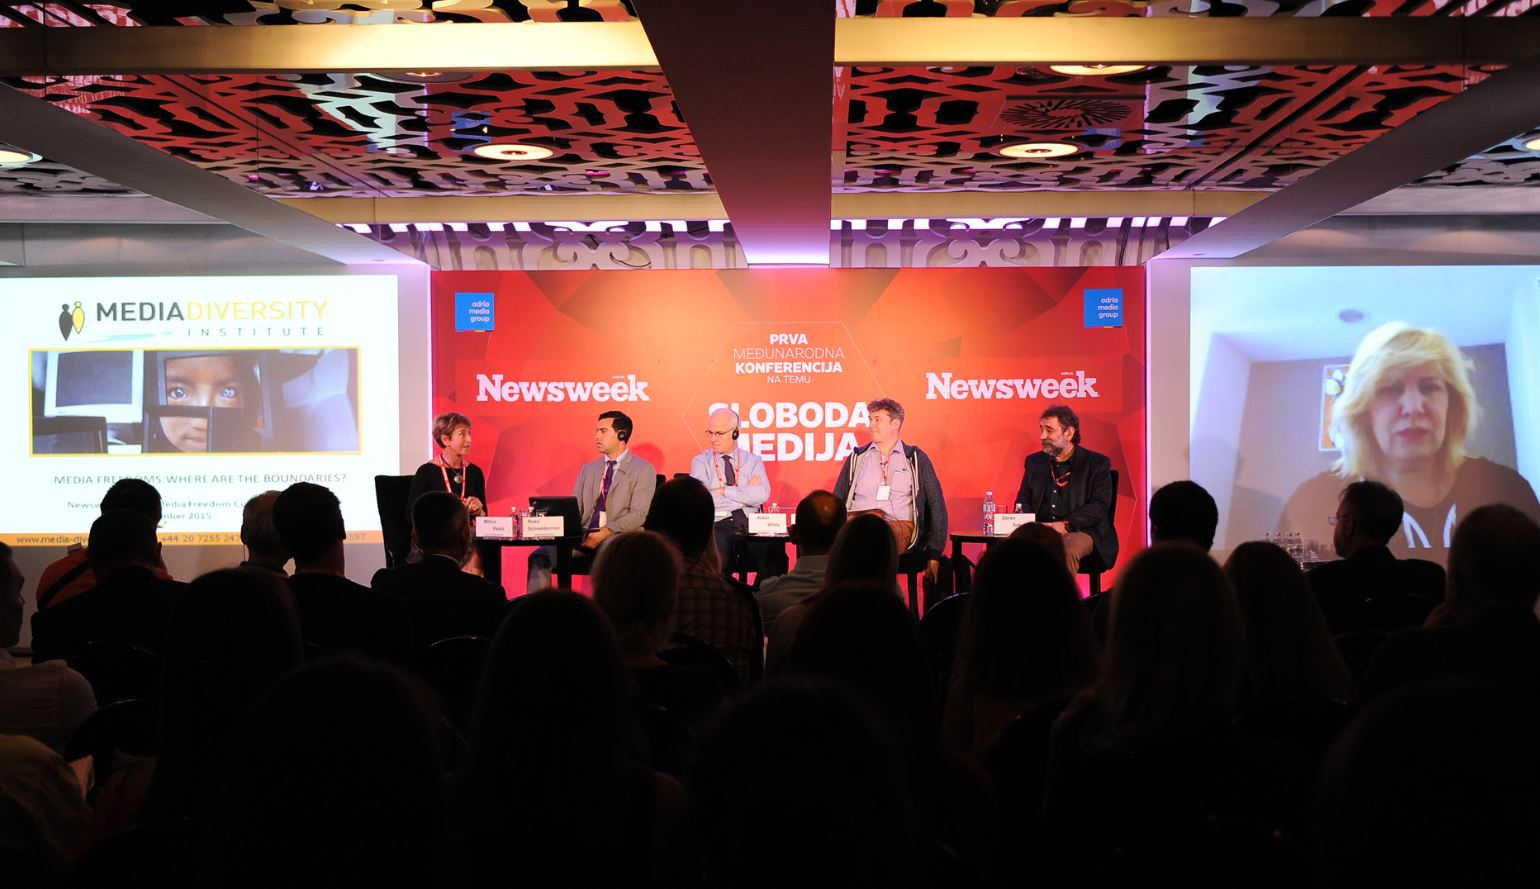 Newsweek_Conference_2